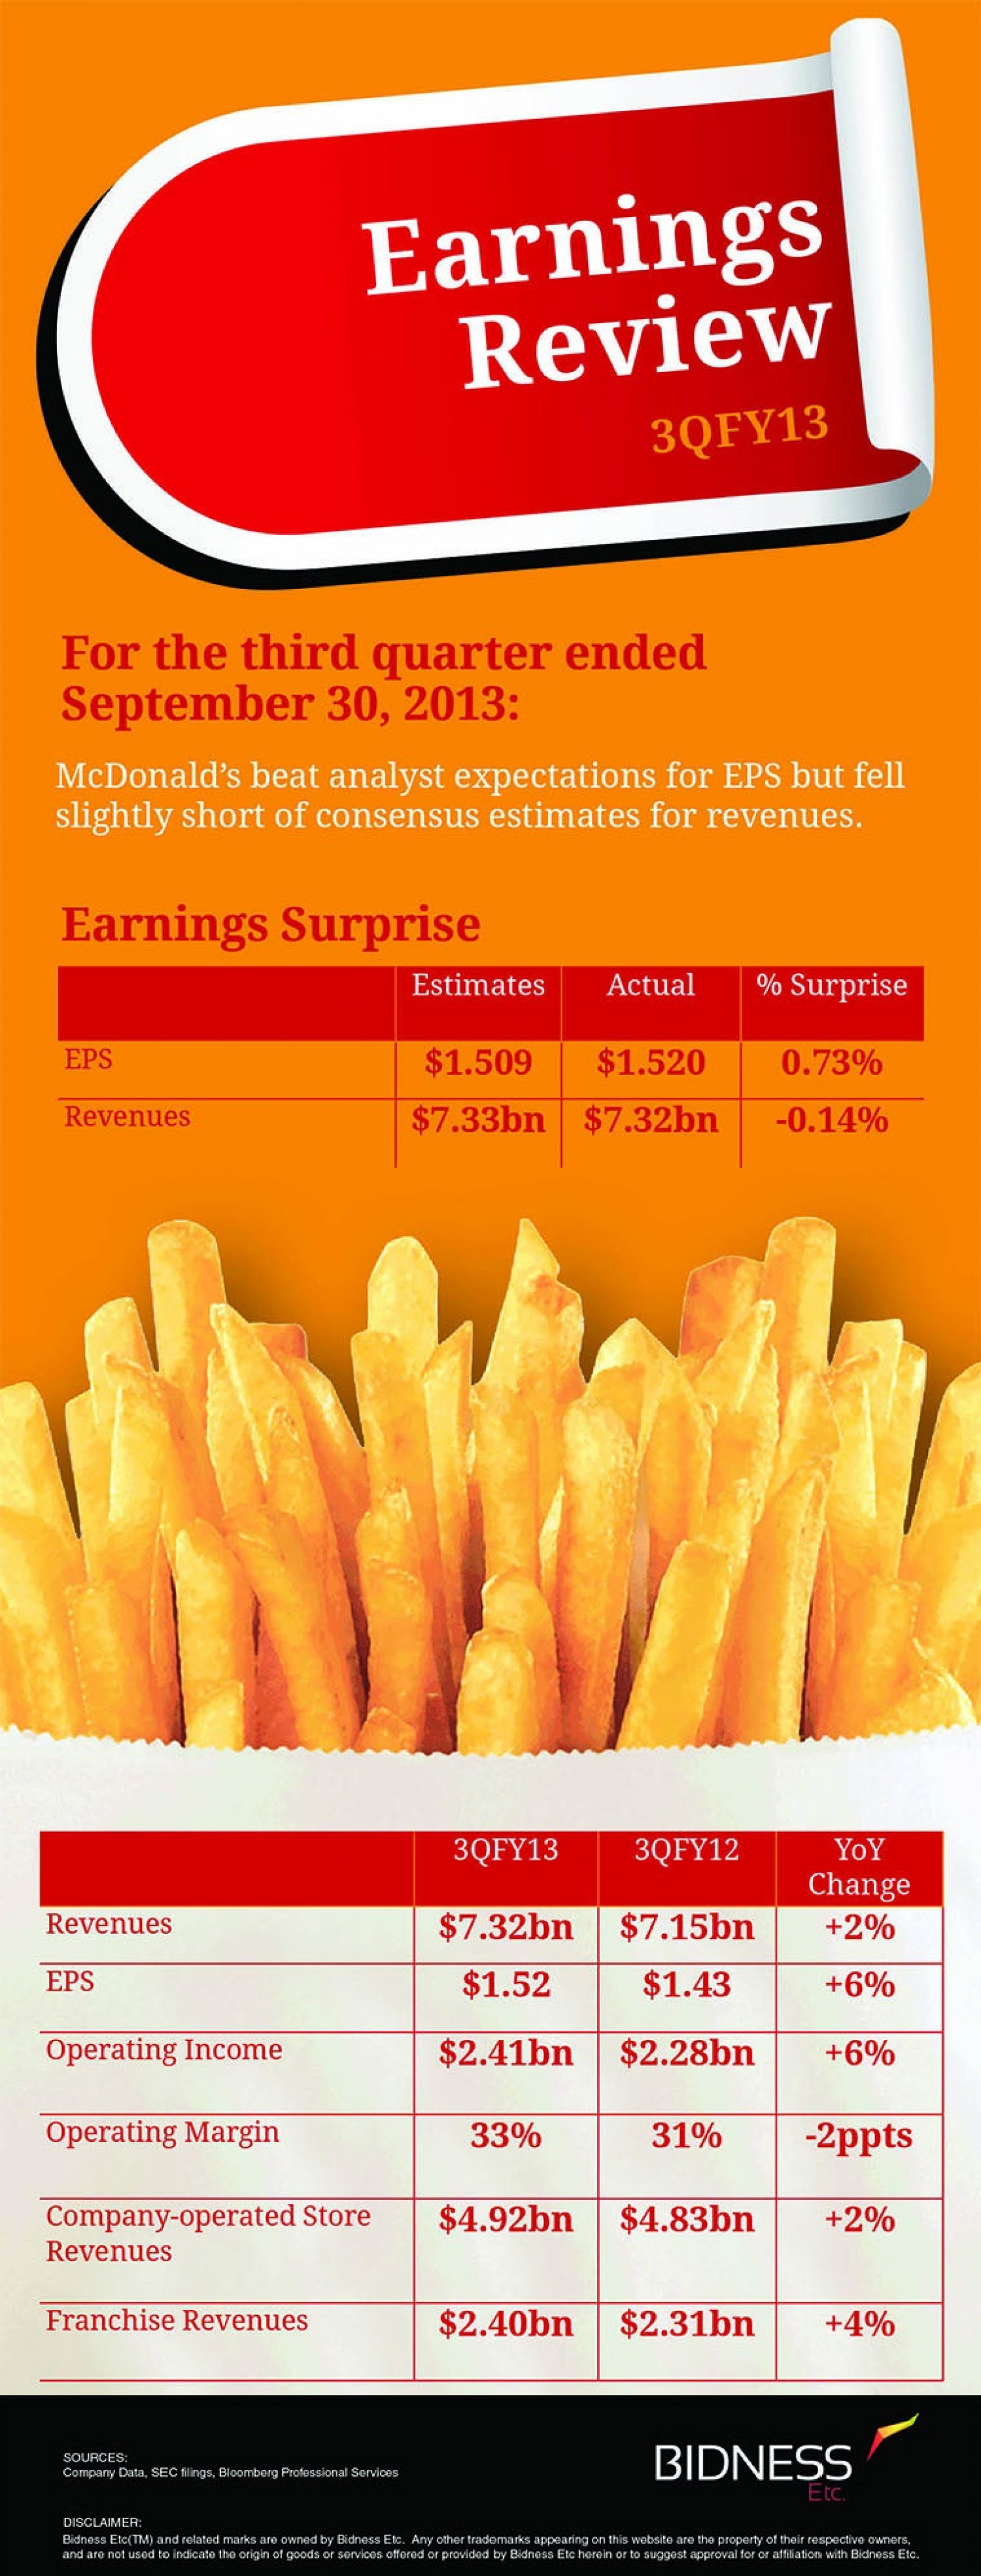 McDonald's (MCD) Earnings Review Infographic